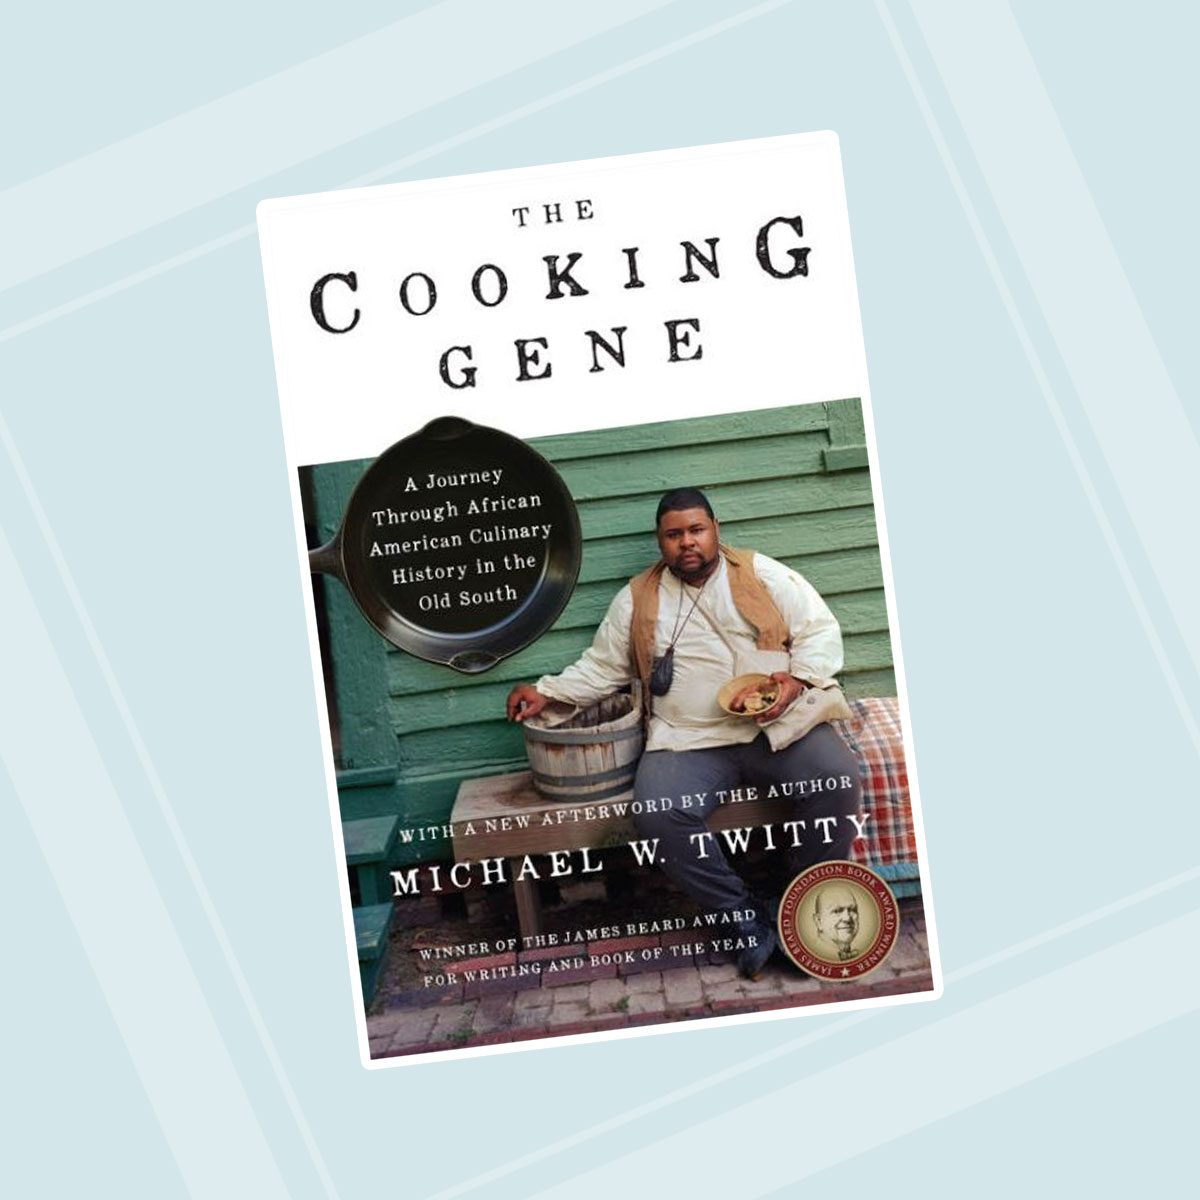 The Cooking Gene: A Journey Through African American Culinary History in the Old South (Hardcover)